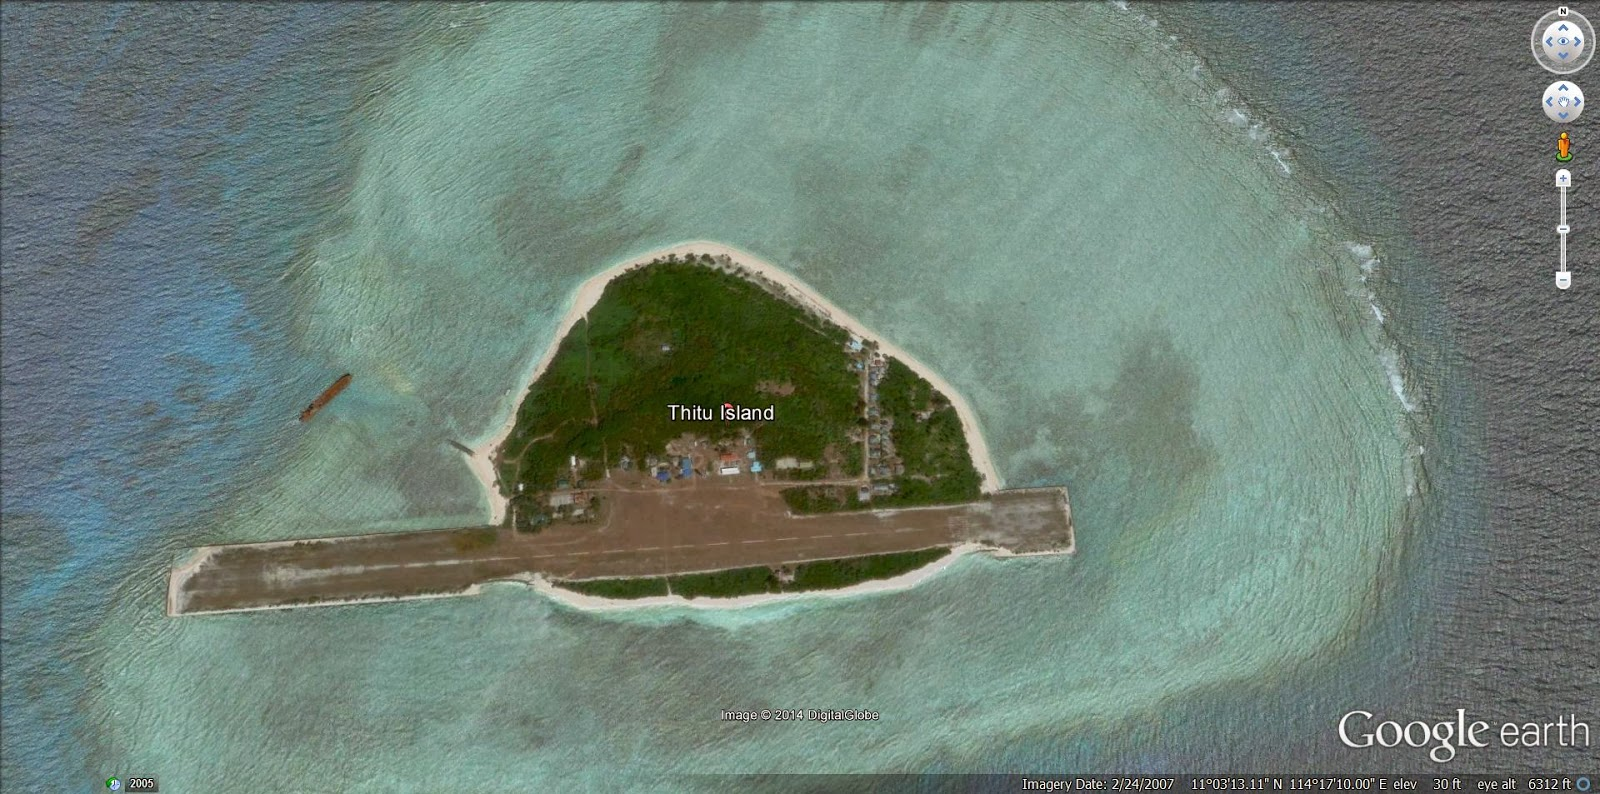 case of spratly island Case background 1 abstract the spratly islands of the south china sea are a potential tinder box in the region approximately 44 of the 51 small islands and reefs are claimed or occupied by china, the philippines, vietnam.